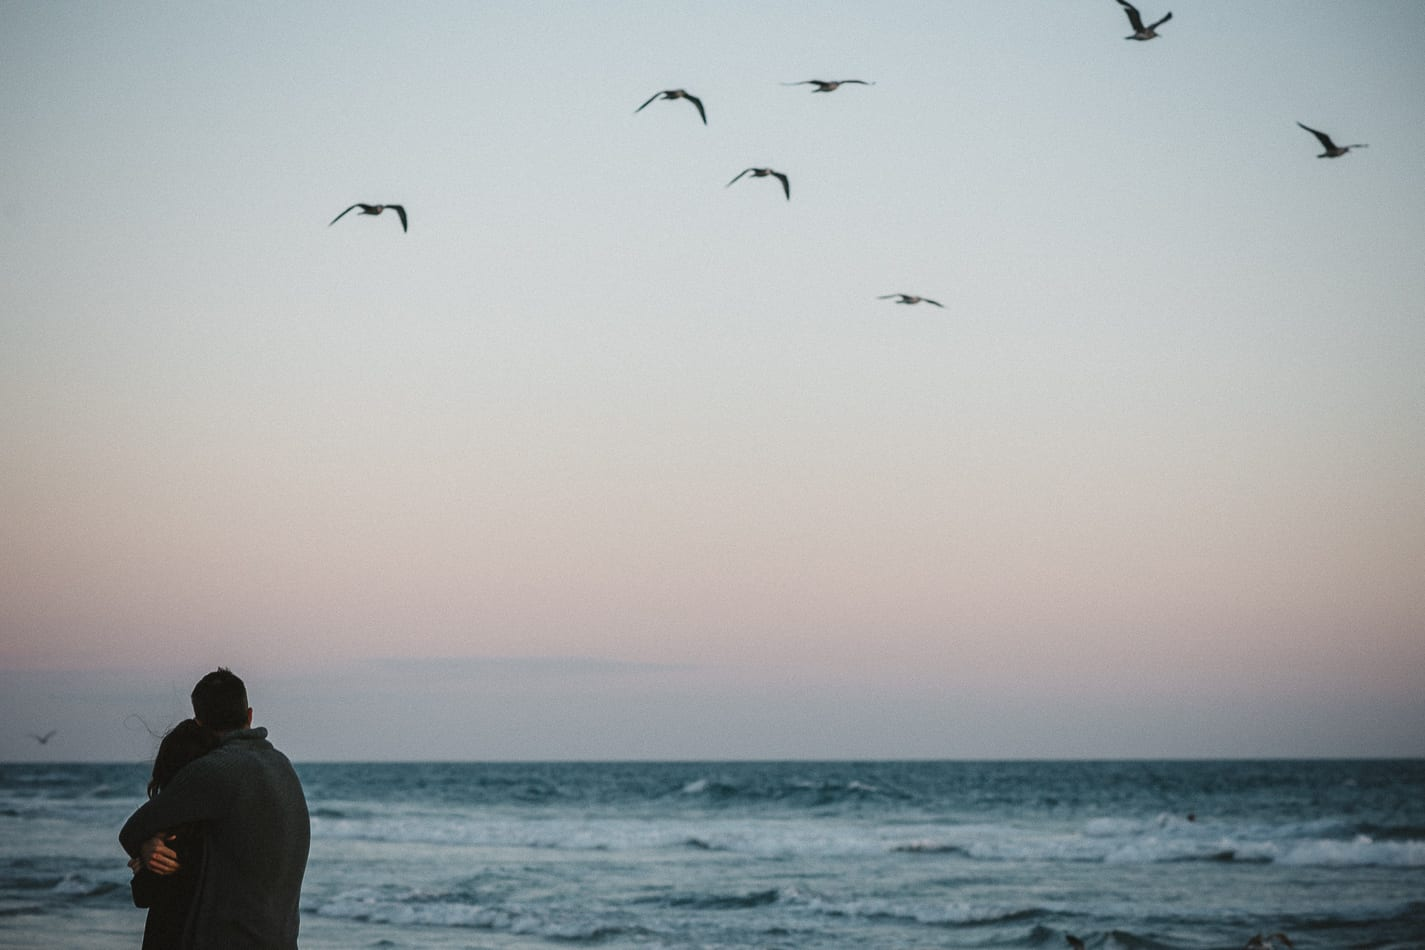 jason-alyssa-huntington-beach-california-engagement-photographer-26